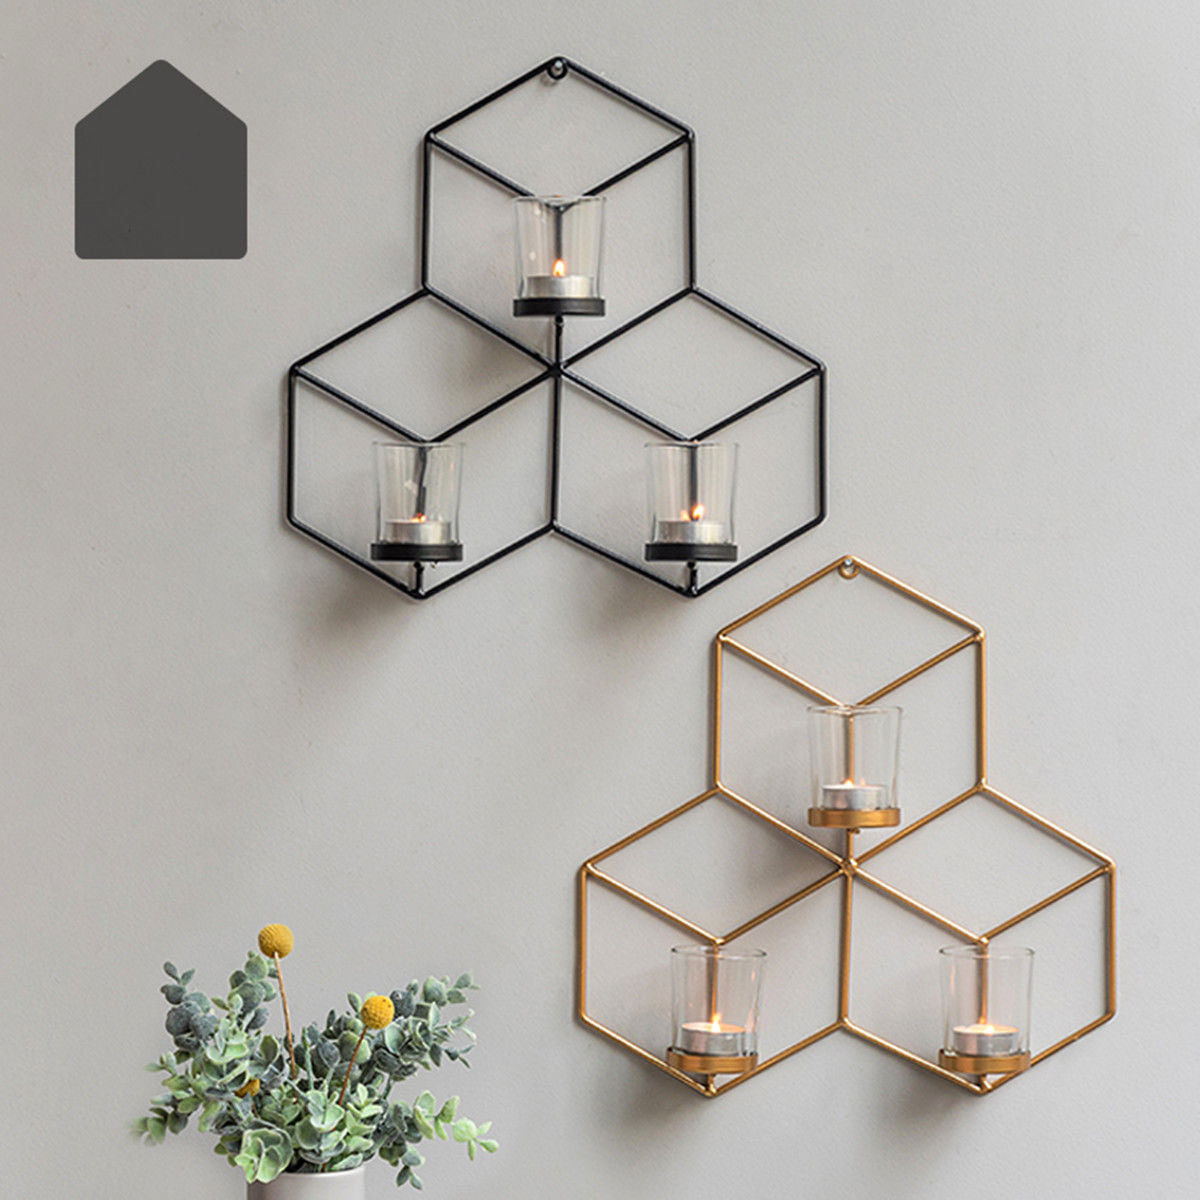 Creative Wall Mounted 3D Tea Light Candle Holder Cool Metal Wall Candlestick  DIY Home Decor Fashion New Design Candle Holders|Candle Holders| -  AliExpress